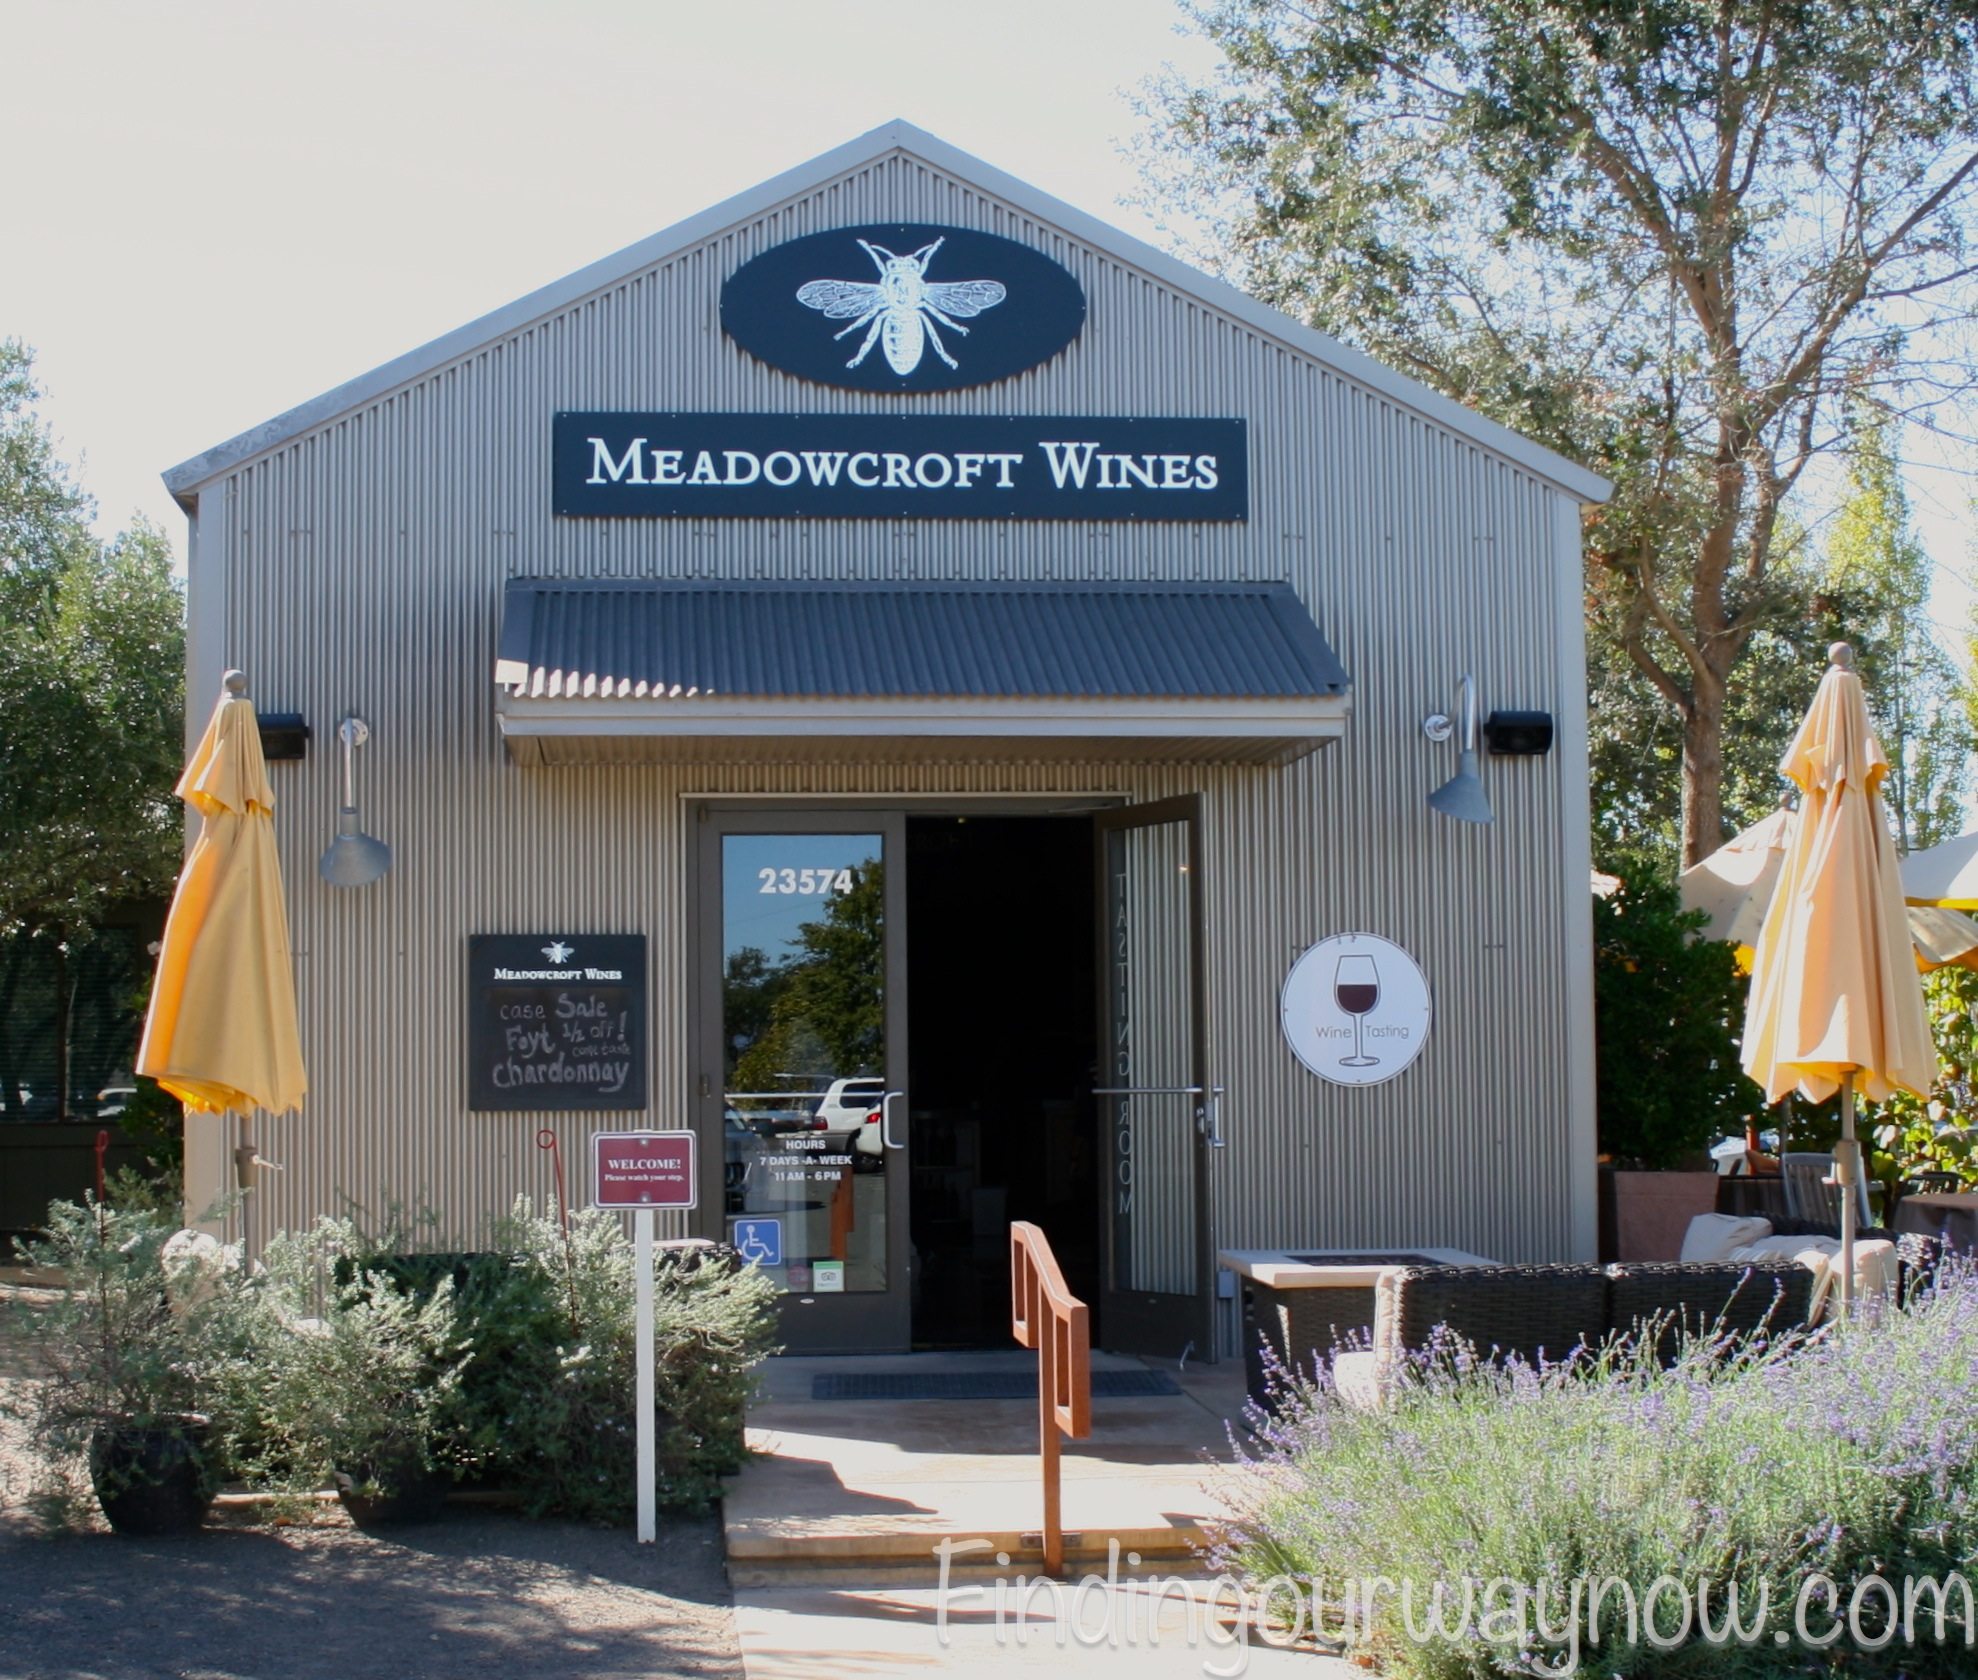 Meadowcroft Wines 2011 Chardonnay Wine Finding Our Way Now